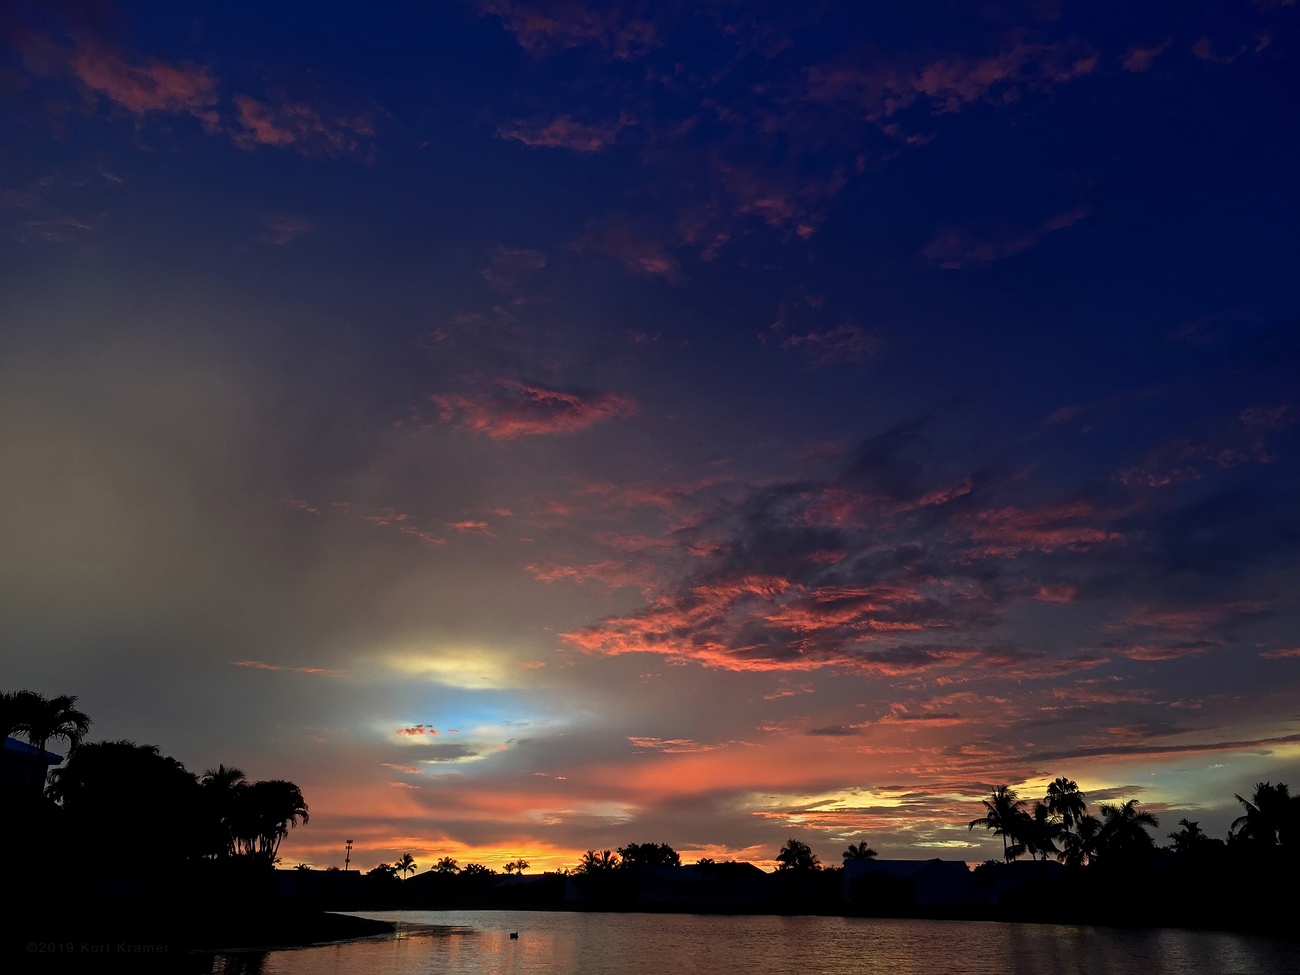 West Boca Sunset by TwoPynts